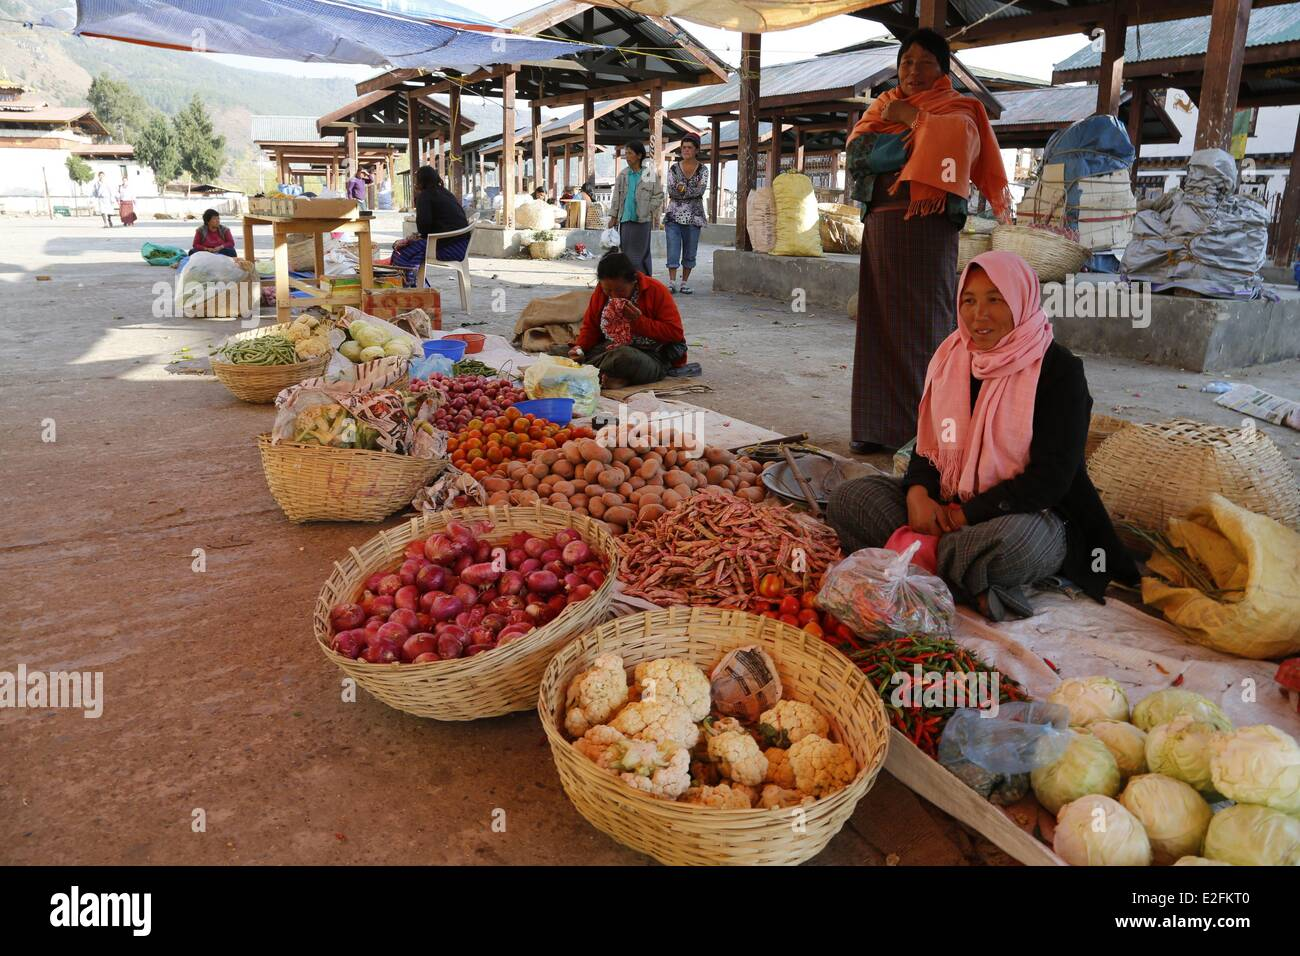 Bhutan district of Paro Paro vegetables stall at the market - Stock Image